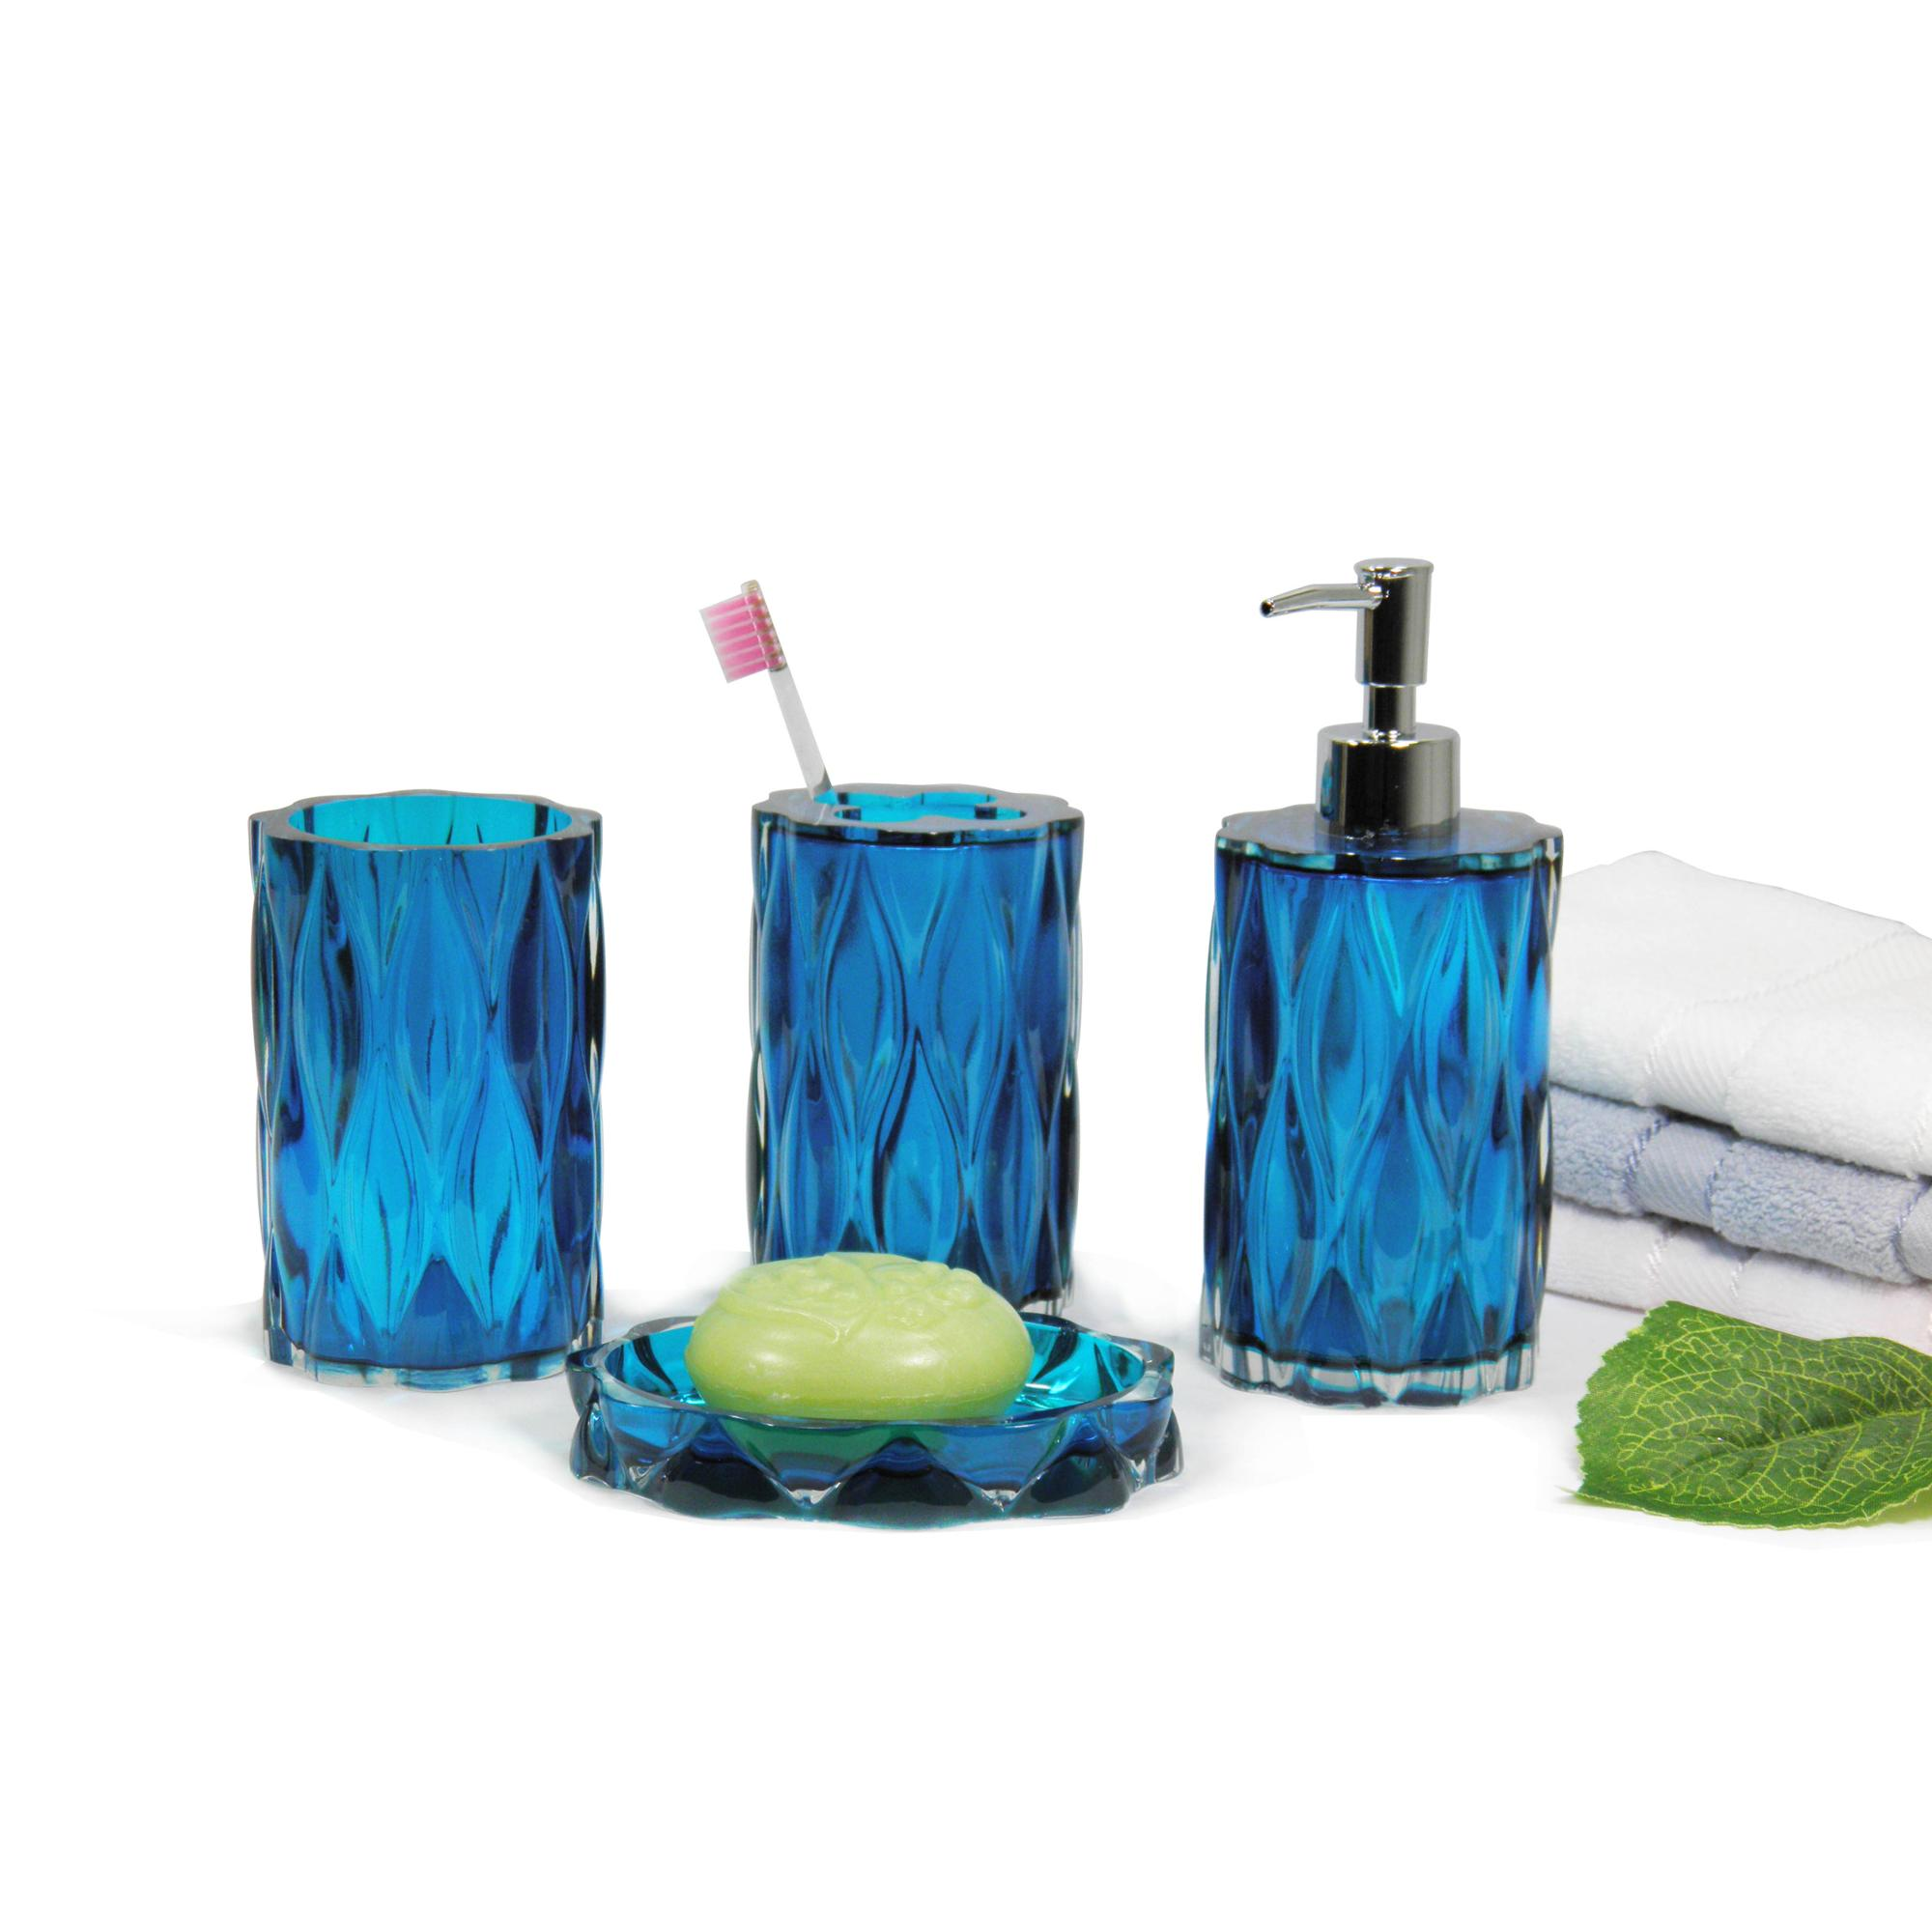 Bathing Products Factory Price Transparent Blue Glass Effect Resin Bath Accessories Set for Home and Hotel  with dispenser